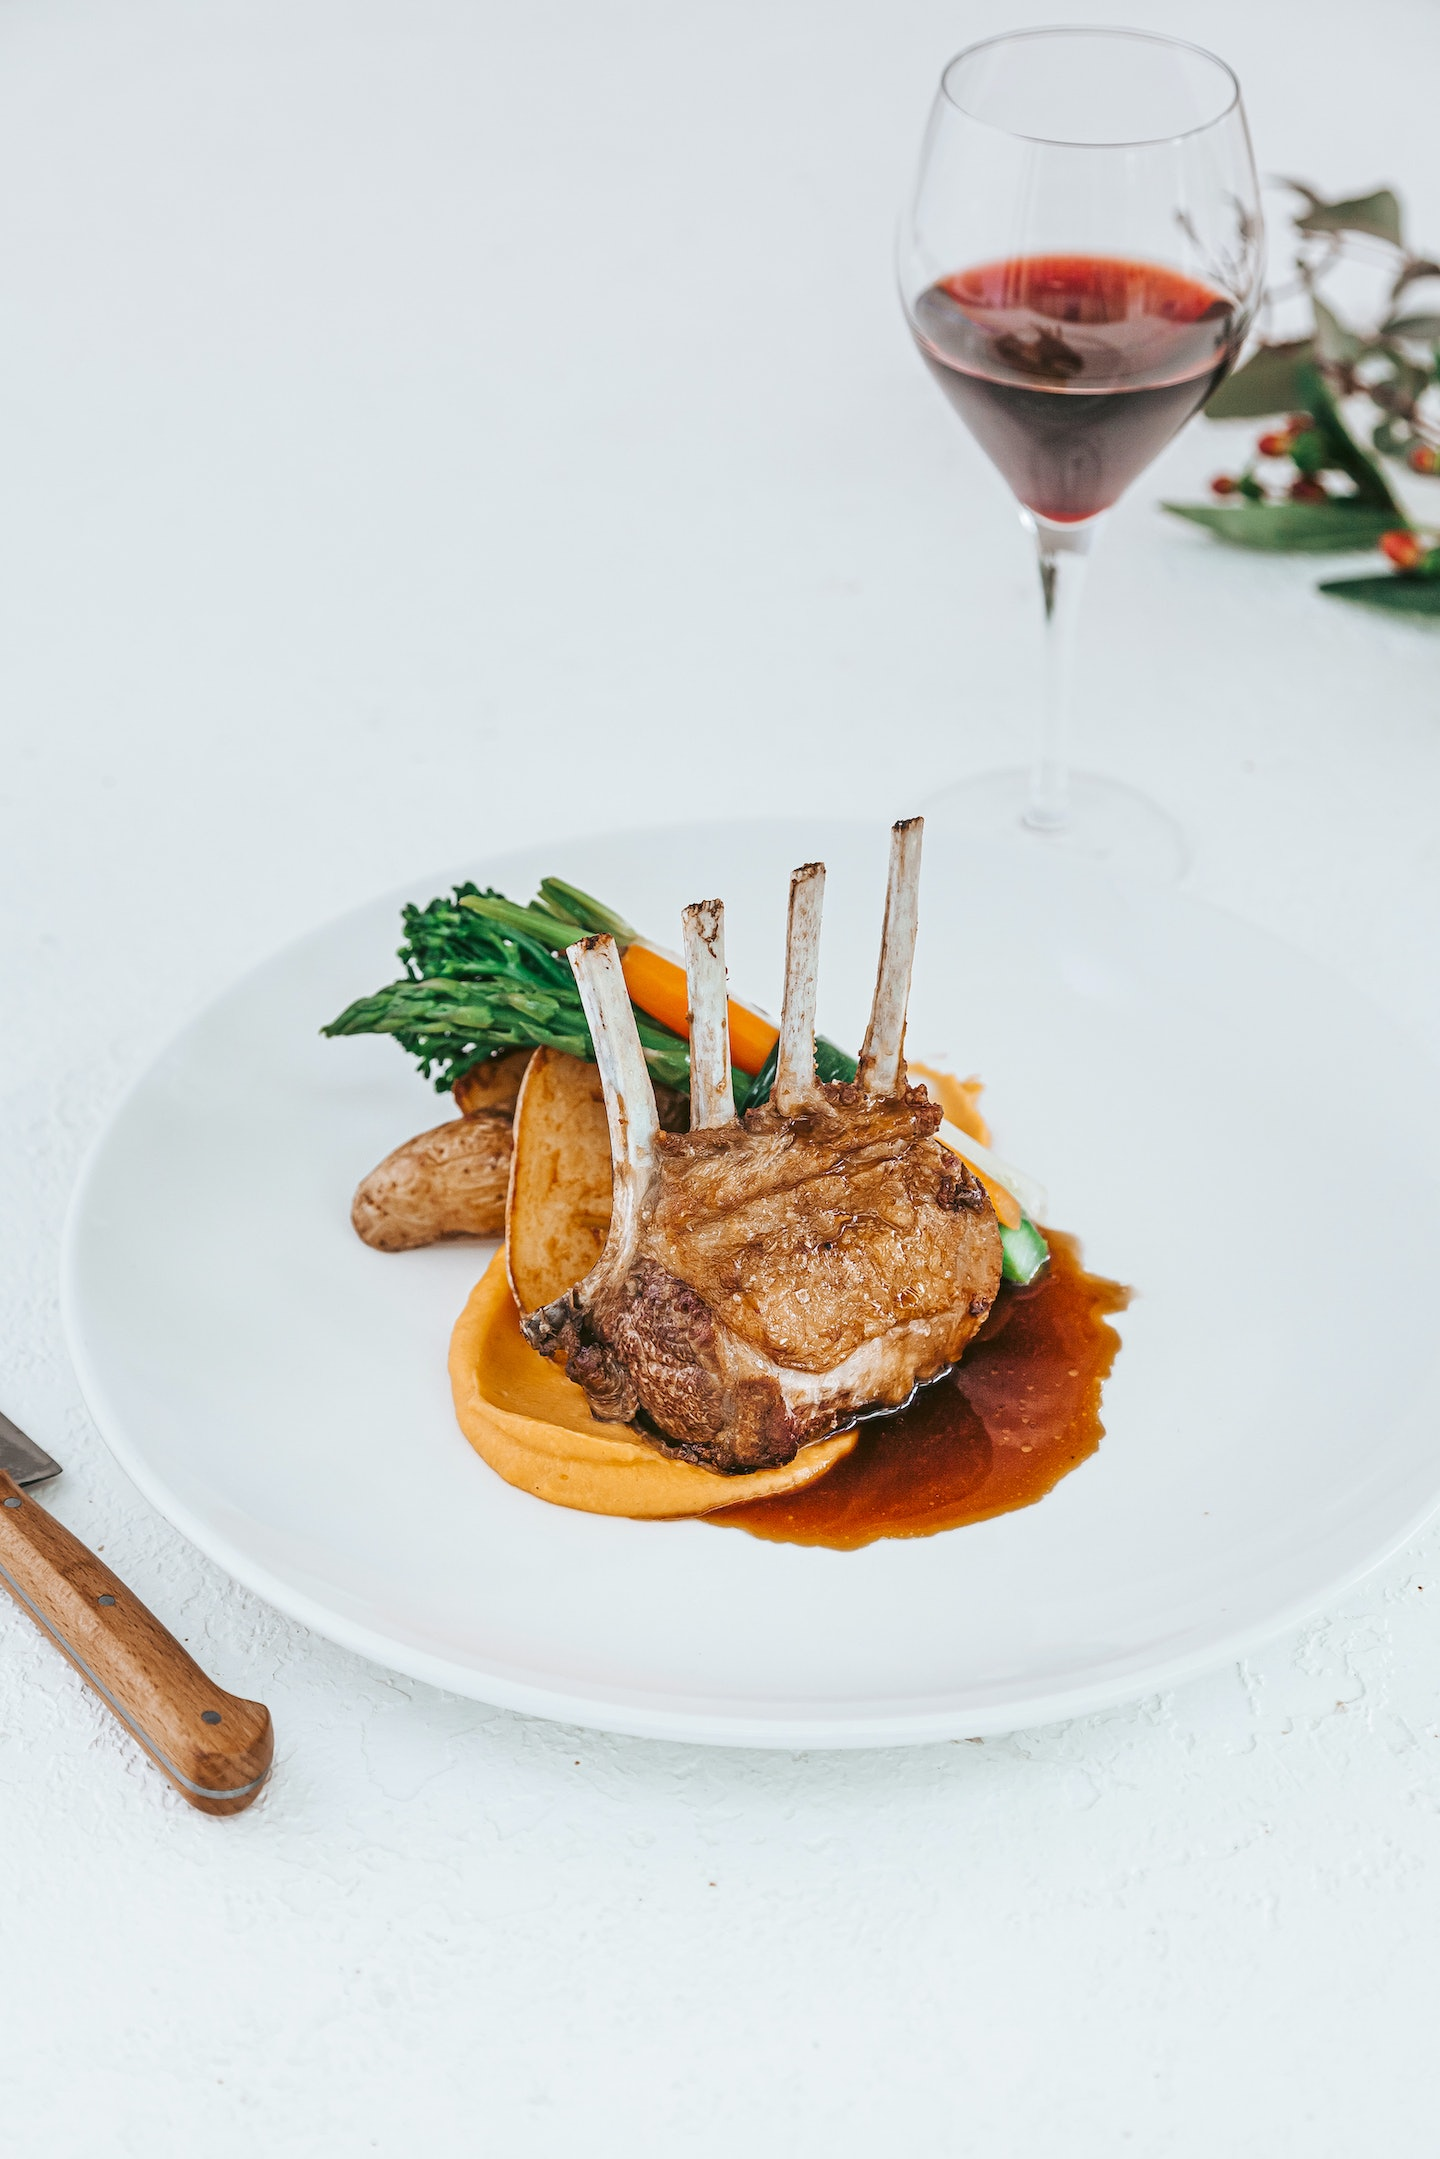 Lamb rack served on a plate with a glass of red wine